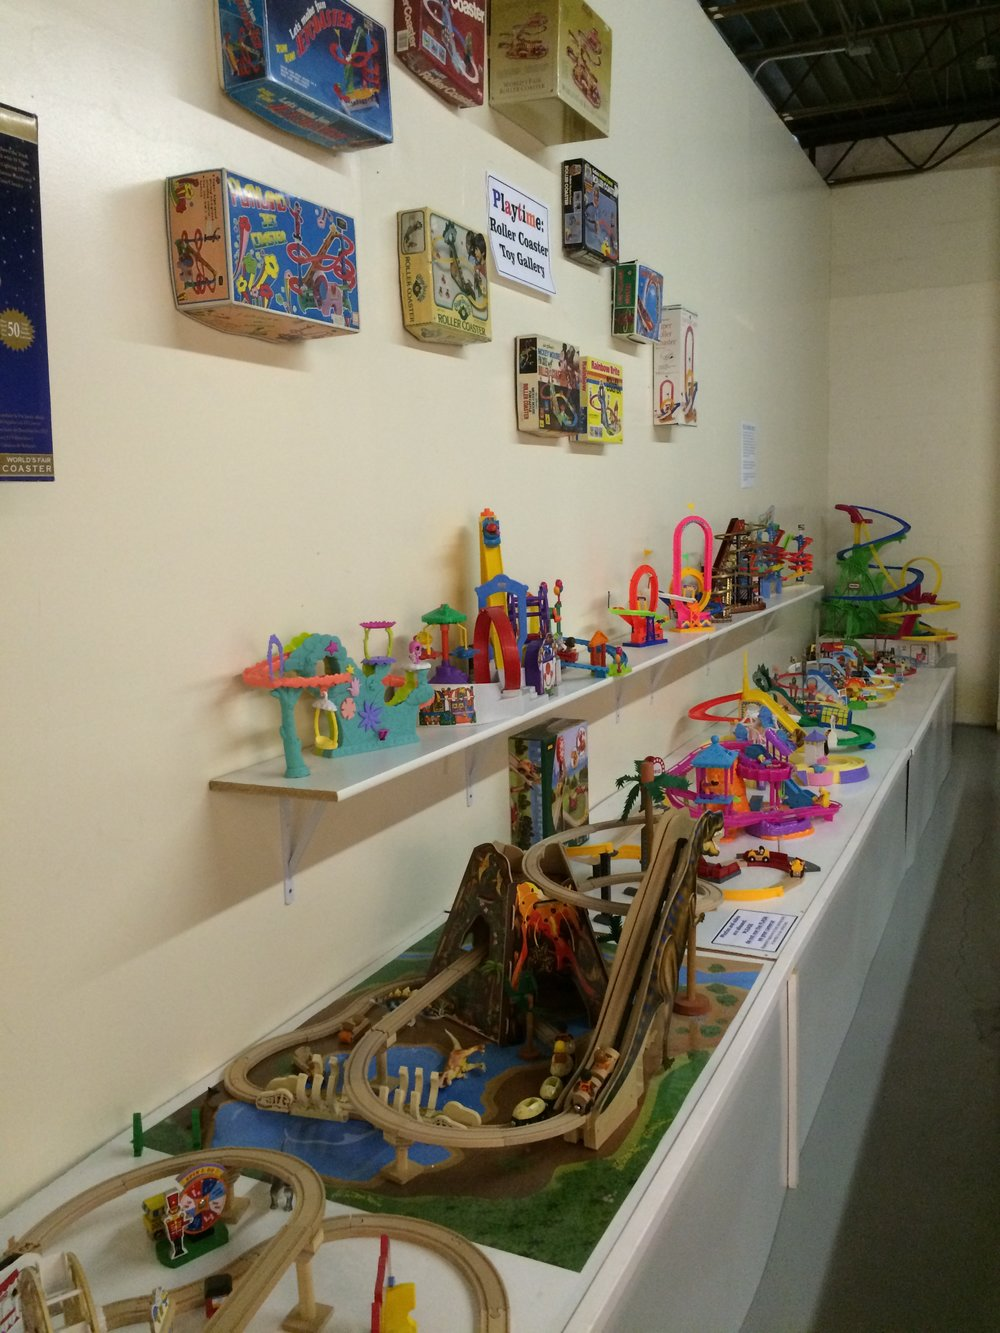 Exhibit: Playtime: Roller Coaster Toy Gallery - General View